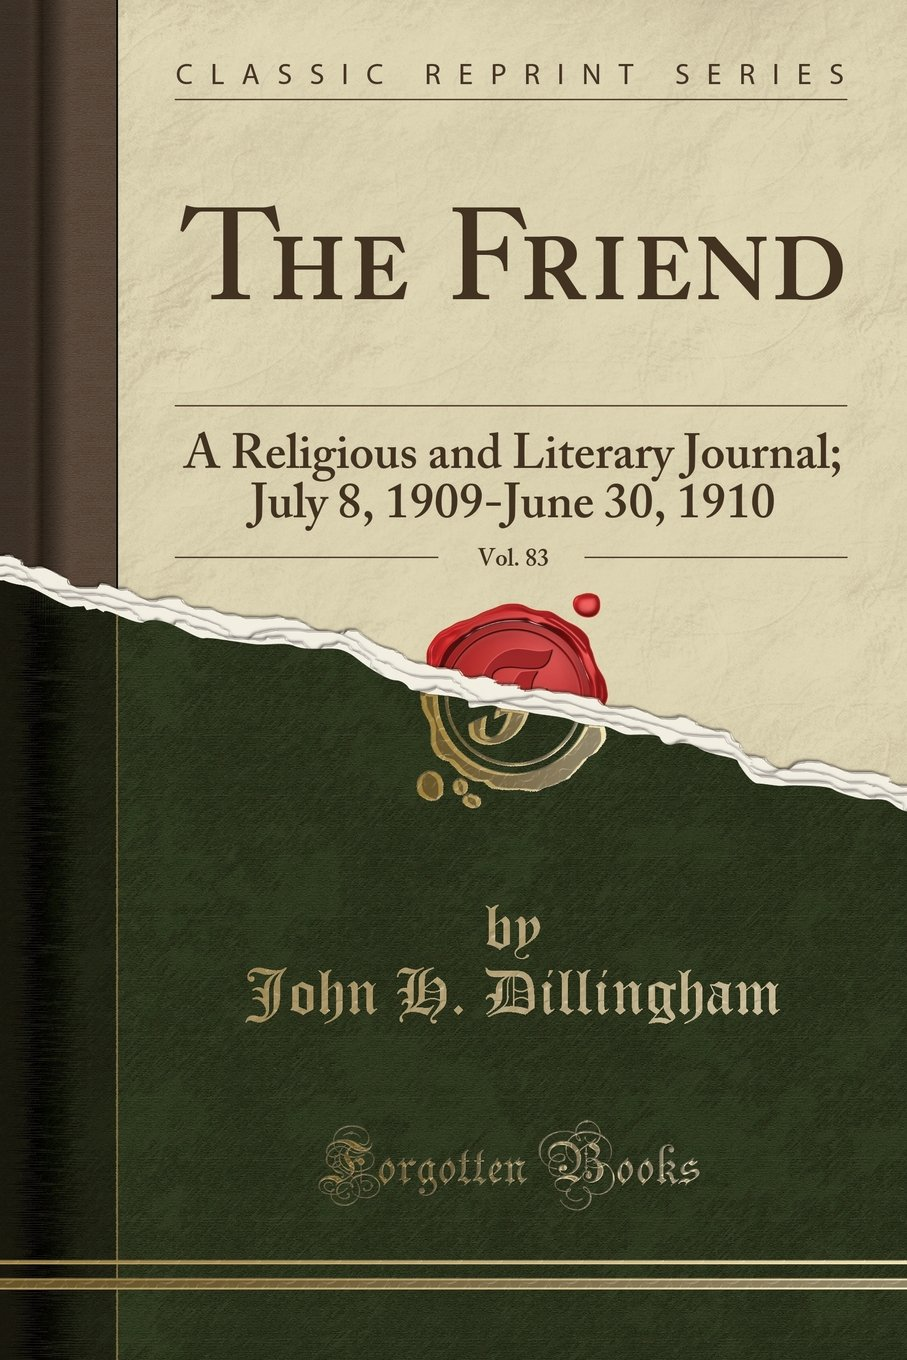 The Friend, Vol. 83: A Religious and Literary Journal; July 8, 1909-June 30, 1910 (Classic Reprint) PDF